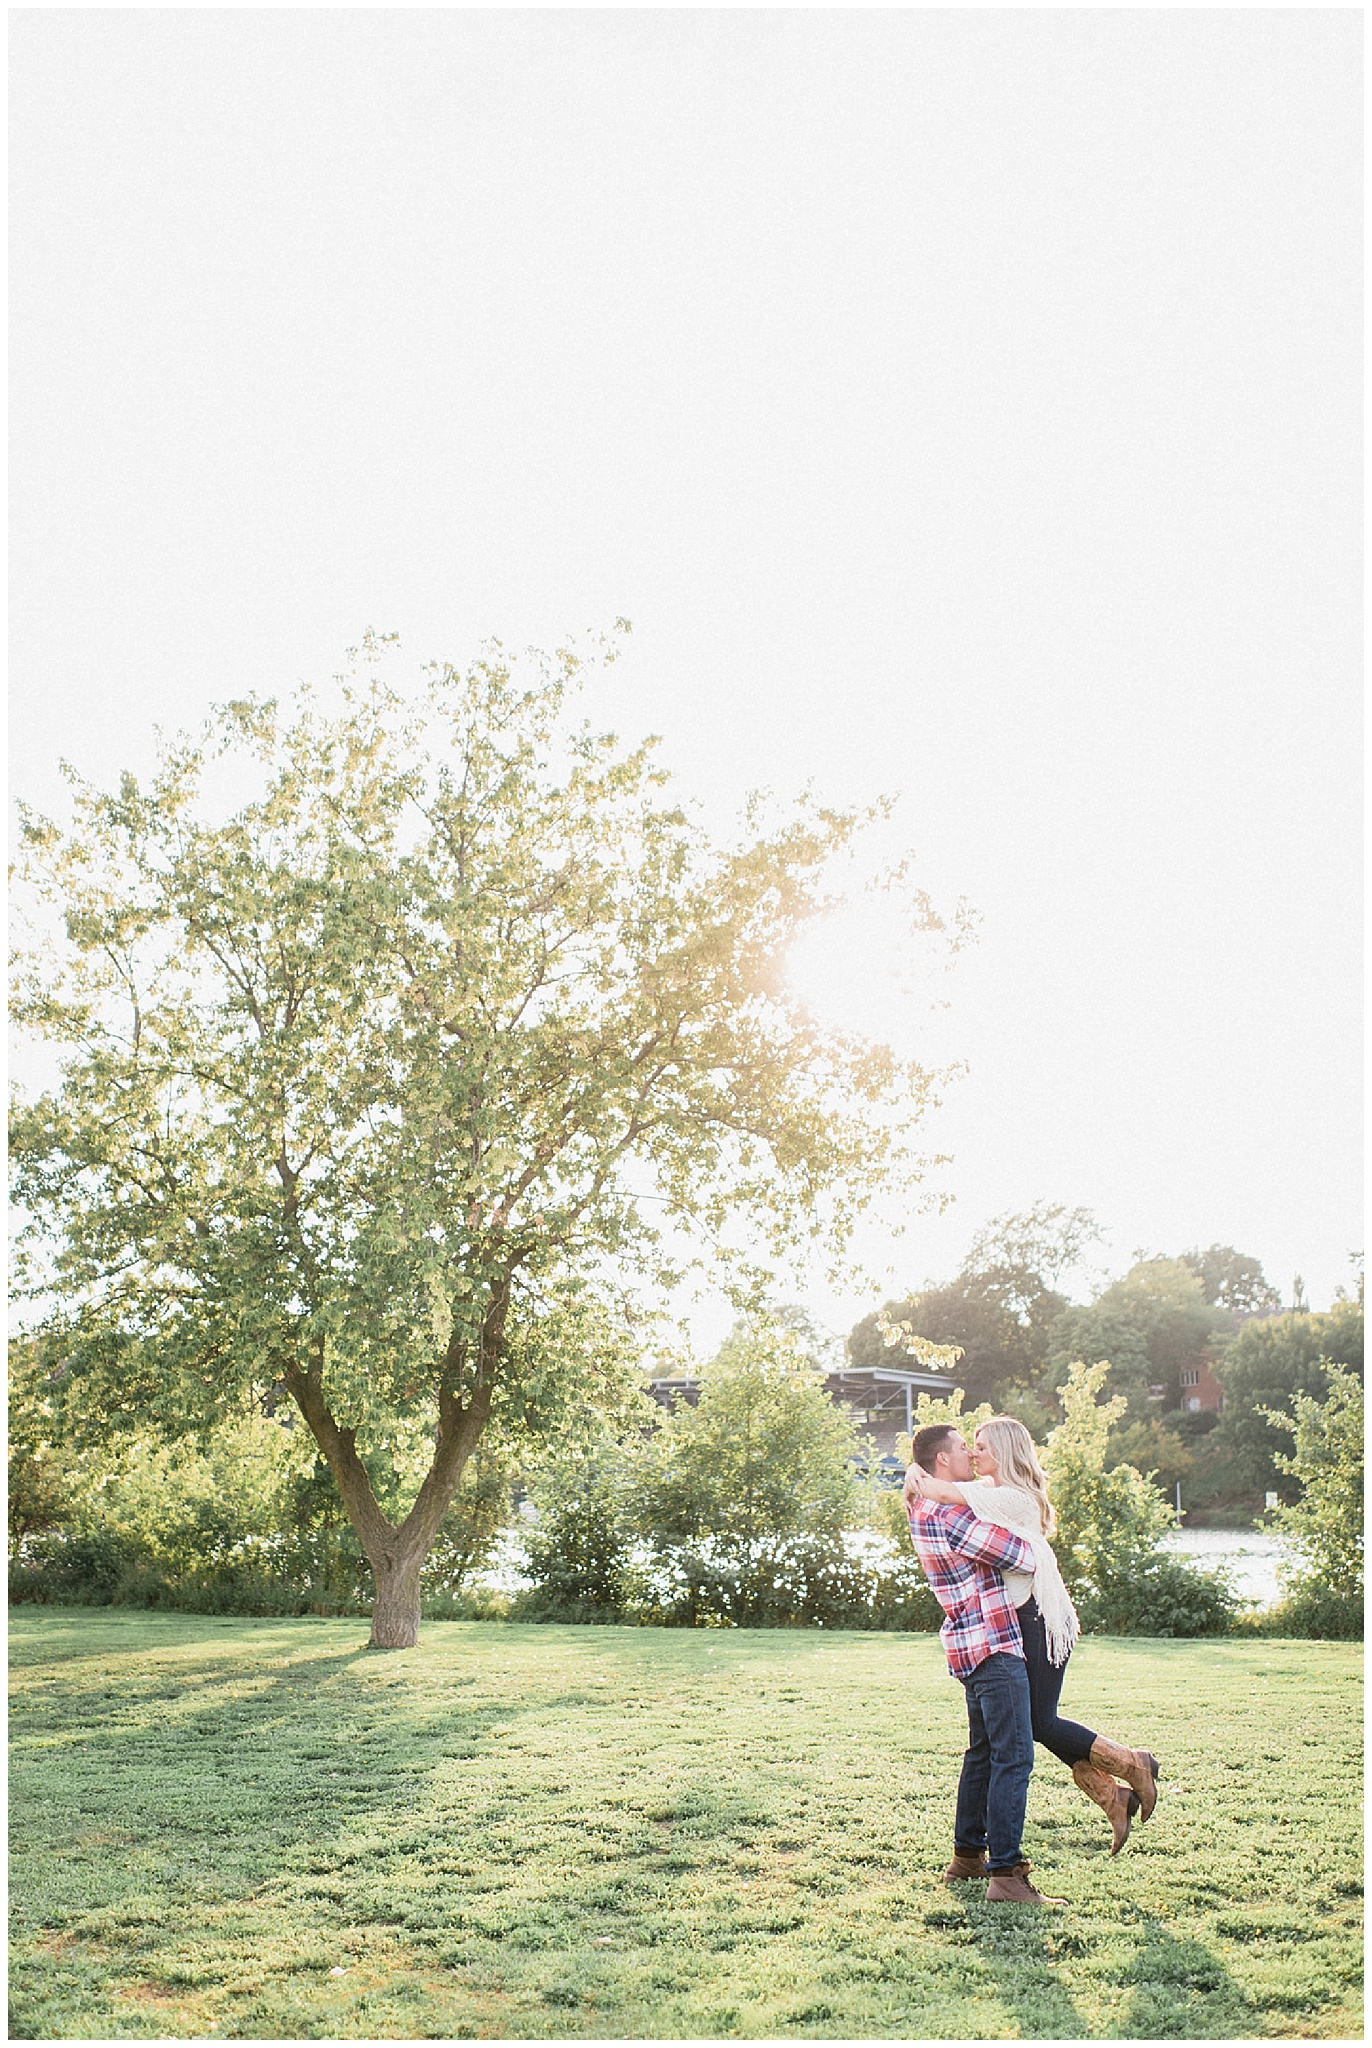 Summertime lakeside engagement session by Jenn Kavanagh Photography